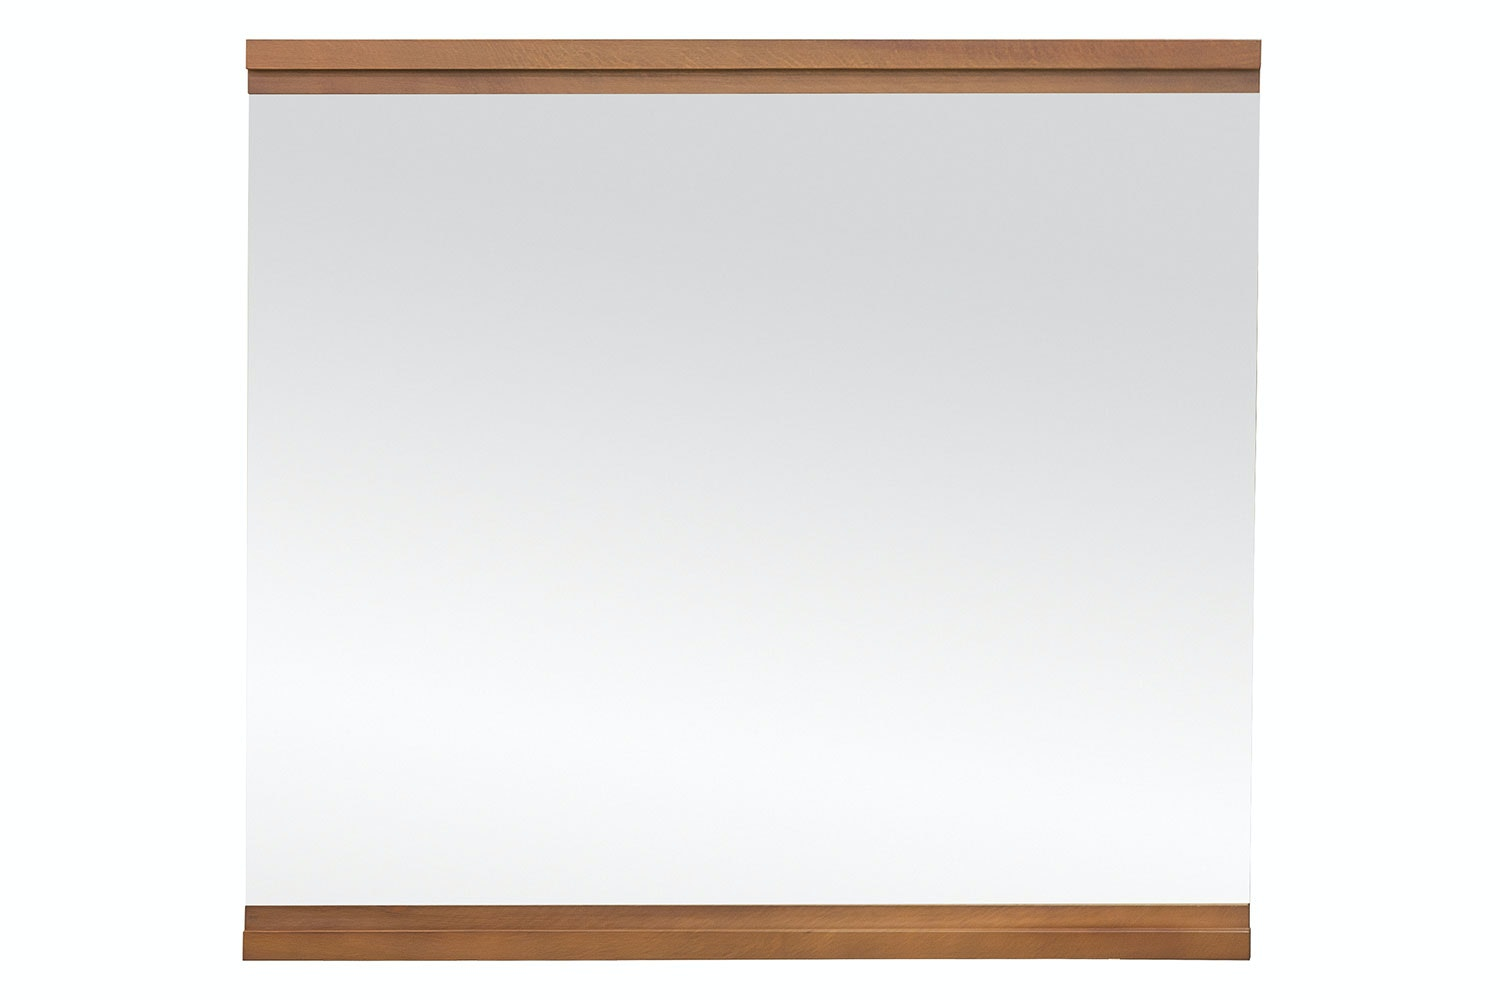 Matai Bay 1500 Wall Mirror by Sorensen Furniture